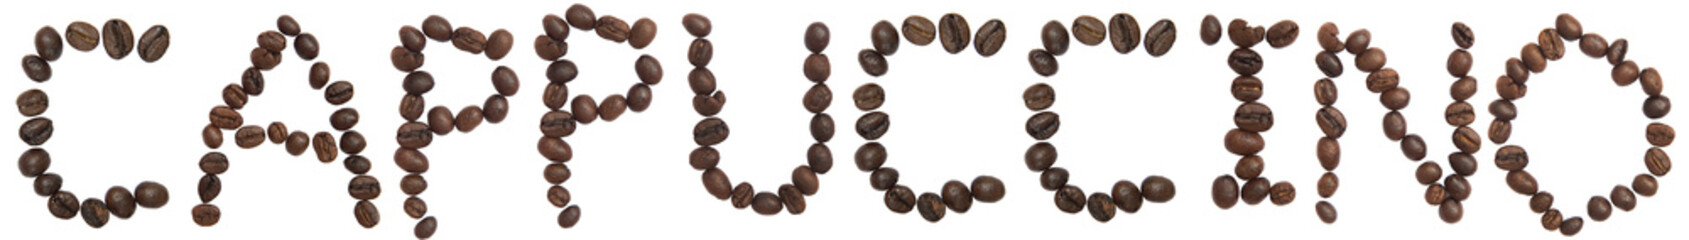 Isolated Word 'CAPPUCCINO' make from coffee bean on white backgr